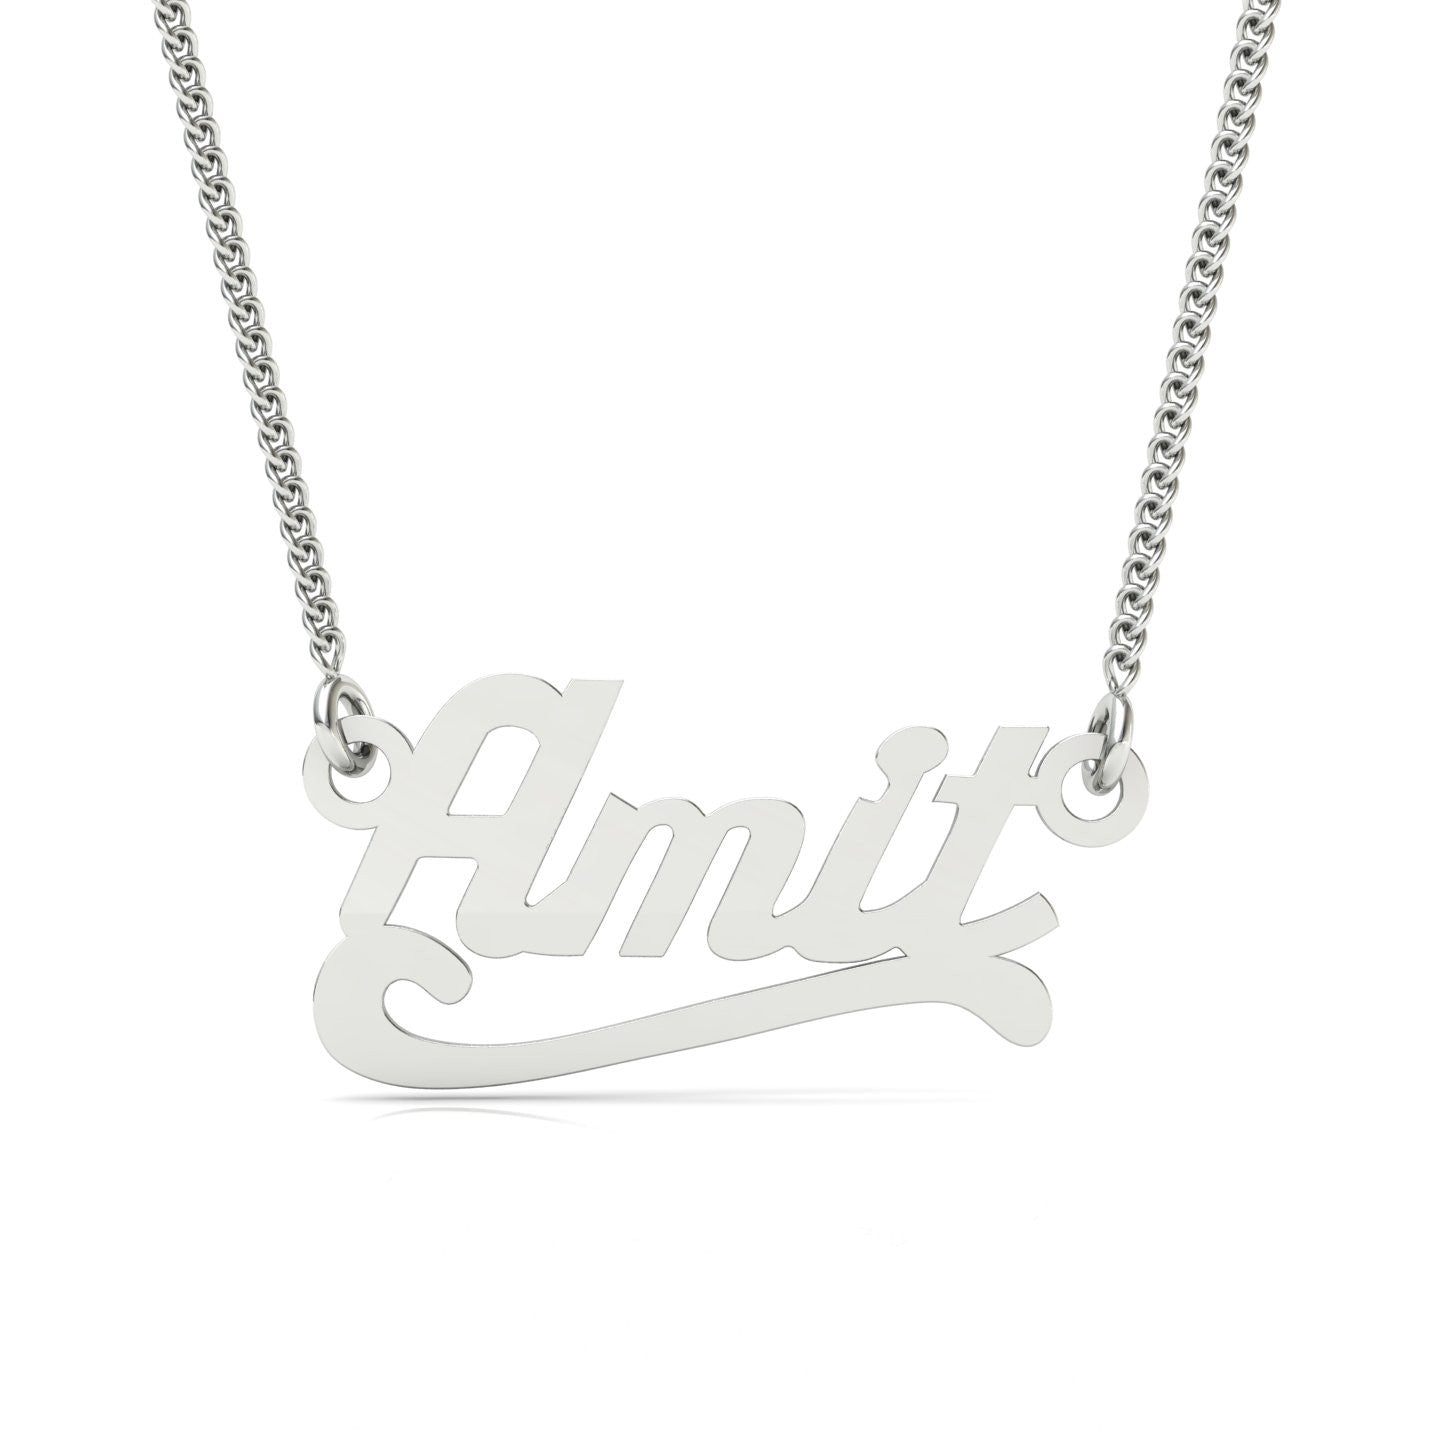 janine personalised design classic jewellery cursive jbjd name necklace binneman